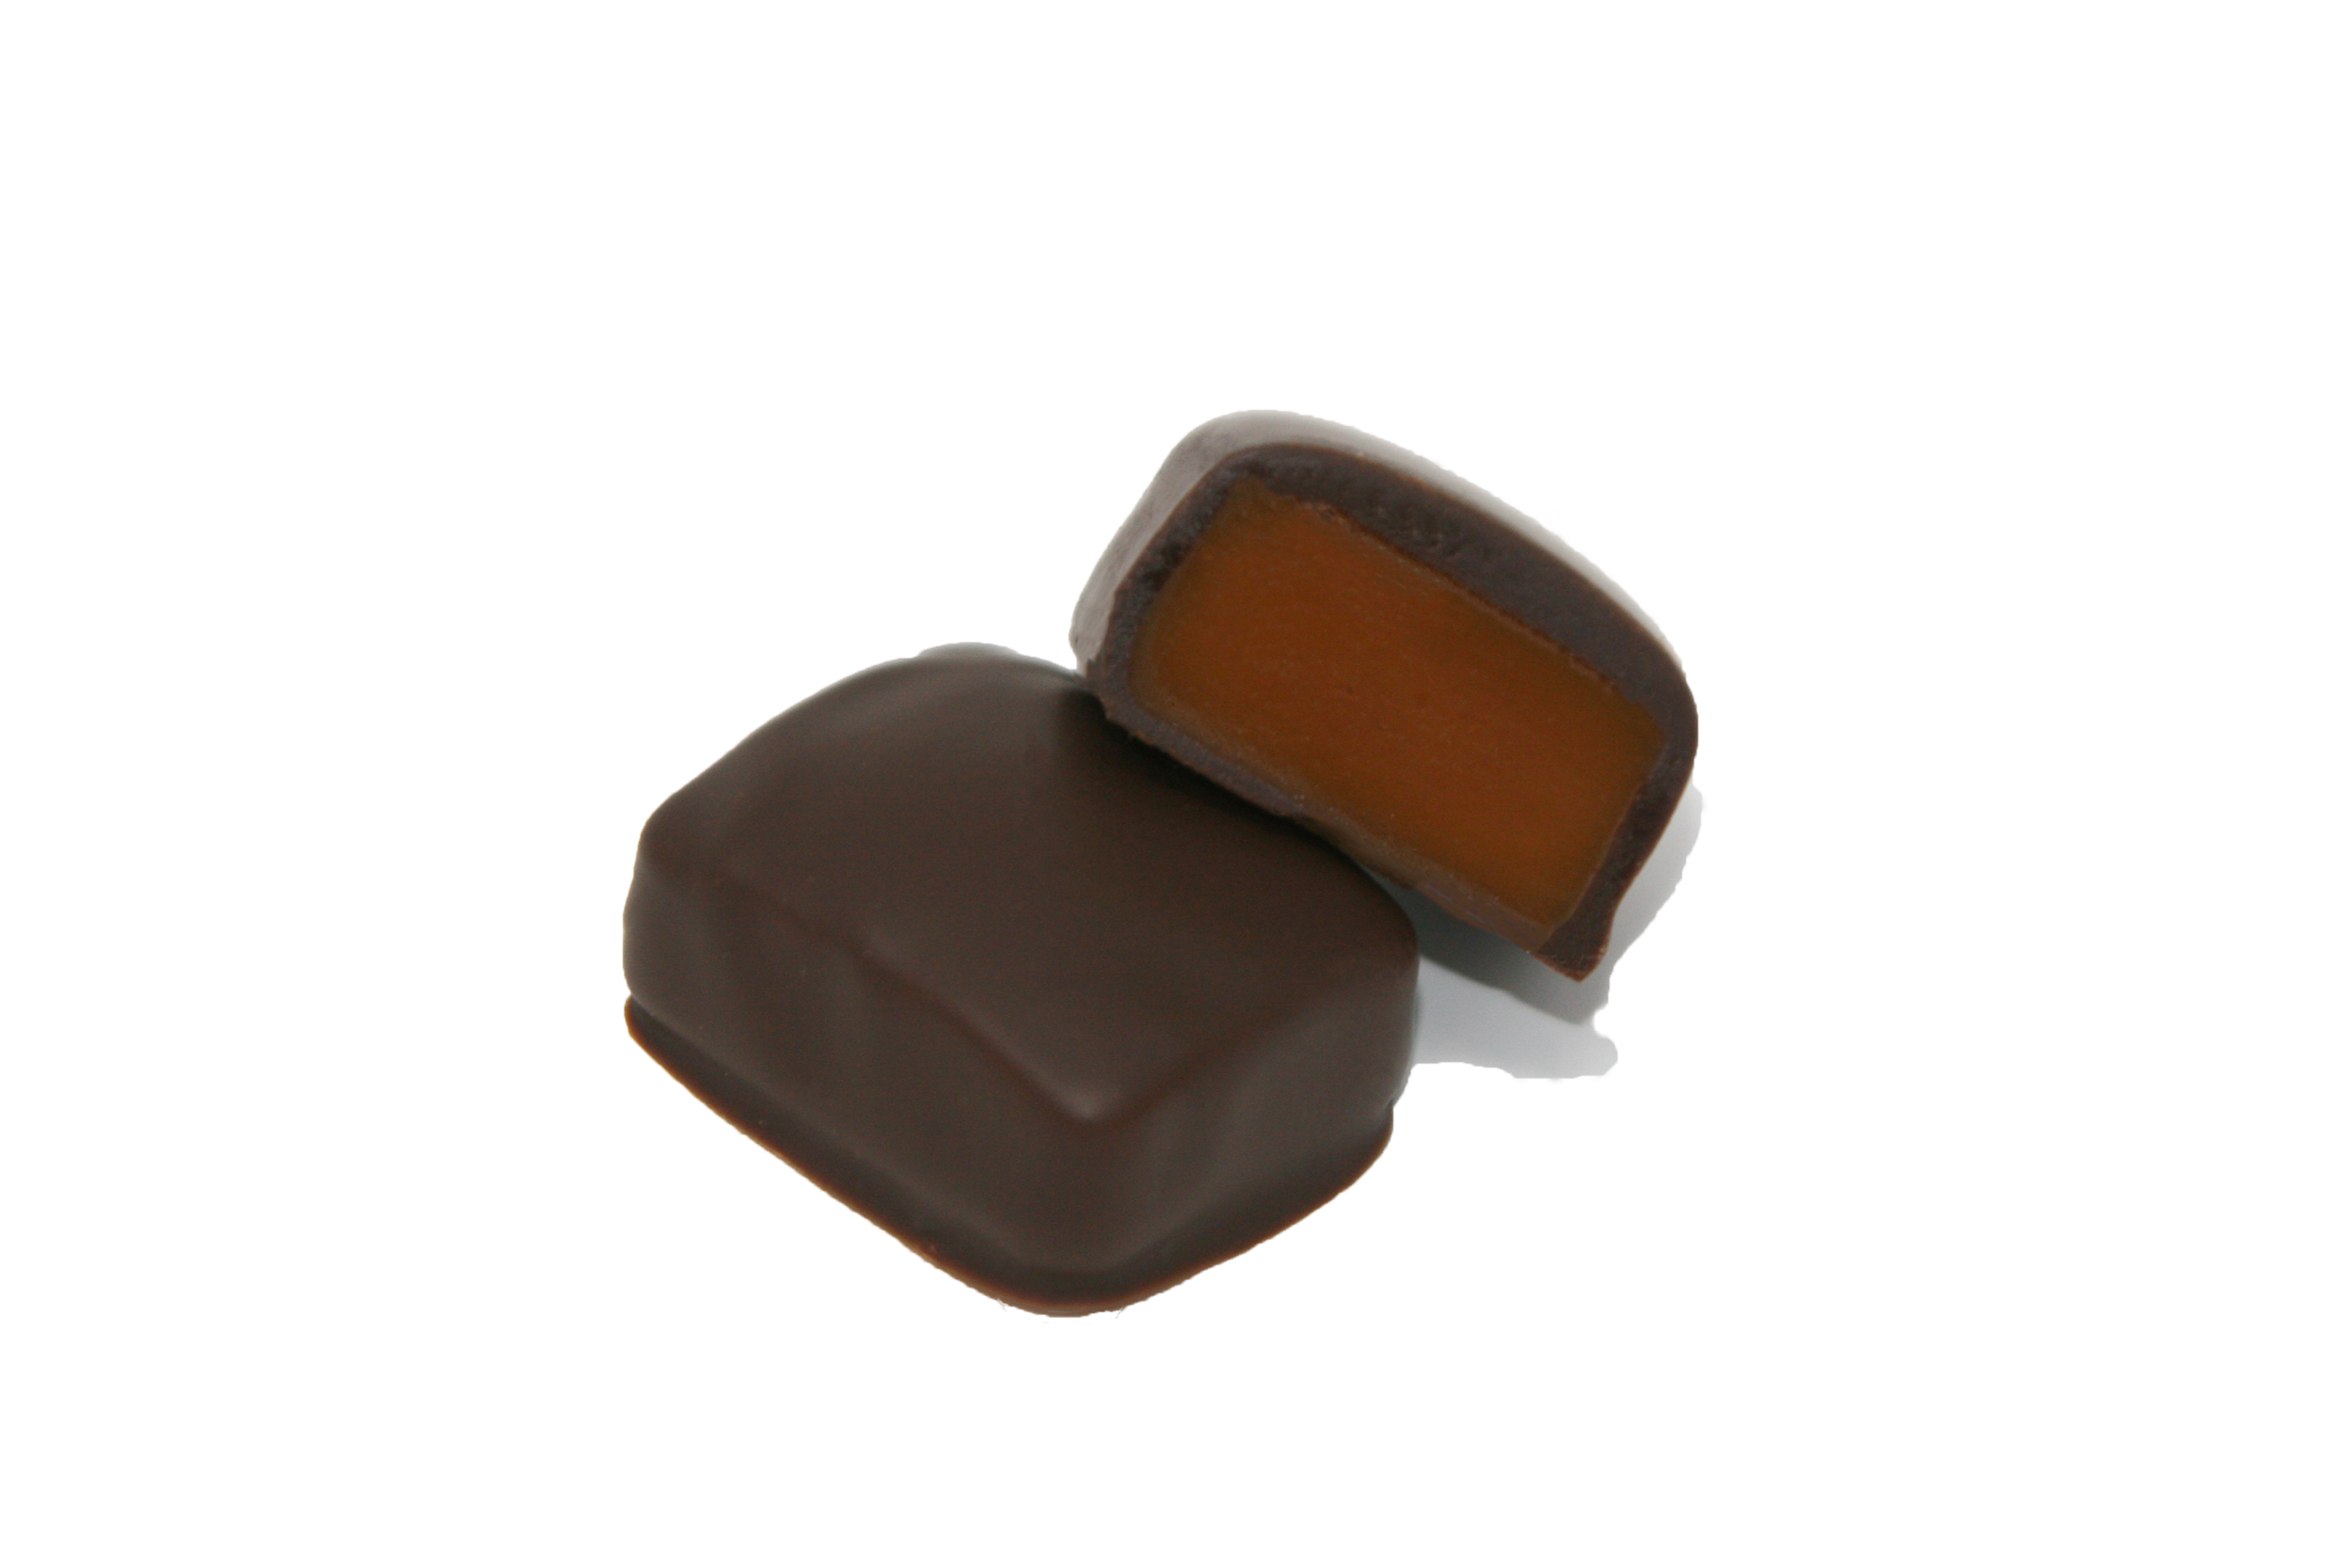 Dark Chocolate Honey Caramels - Our Dark Chocolate Honey Caramels are the perfect chocolate confection for any chocolate crazed connoisseur! We take our bestselling Honey Caramel and enrobe it in Callebaut Fairtrade 55% Belgian Dark Chocolate! It's the perfect combination of sweet honey, rich caramel and fine Belgian Dark Chocolate.